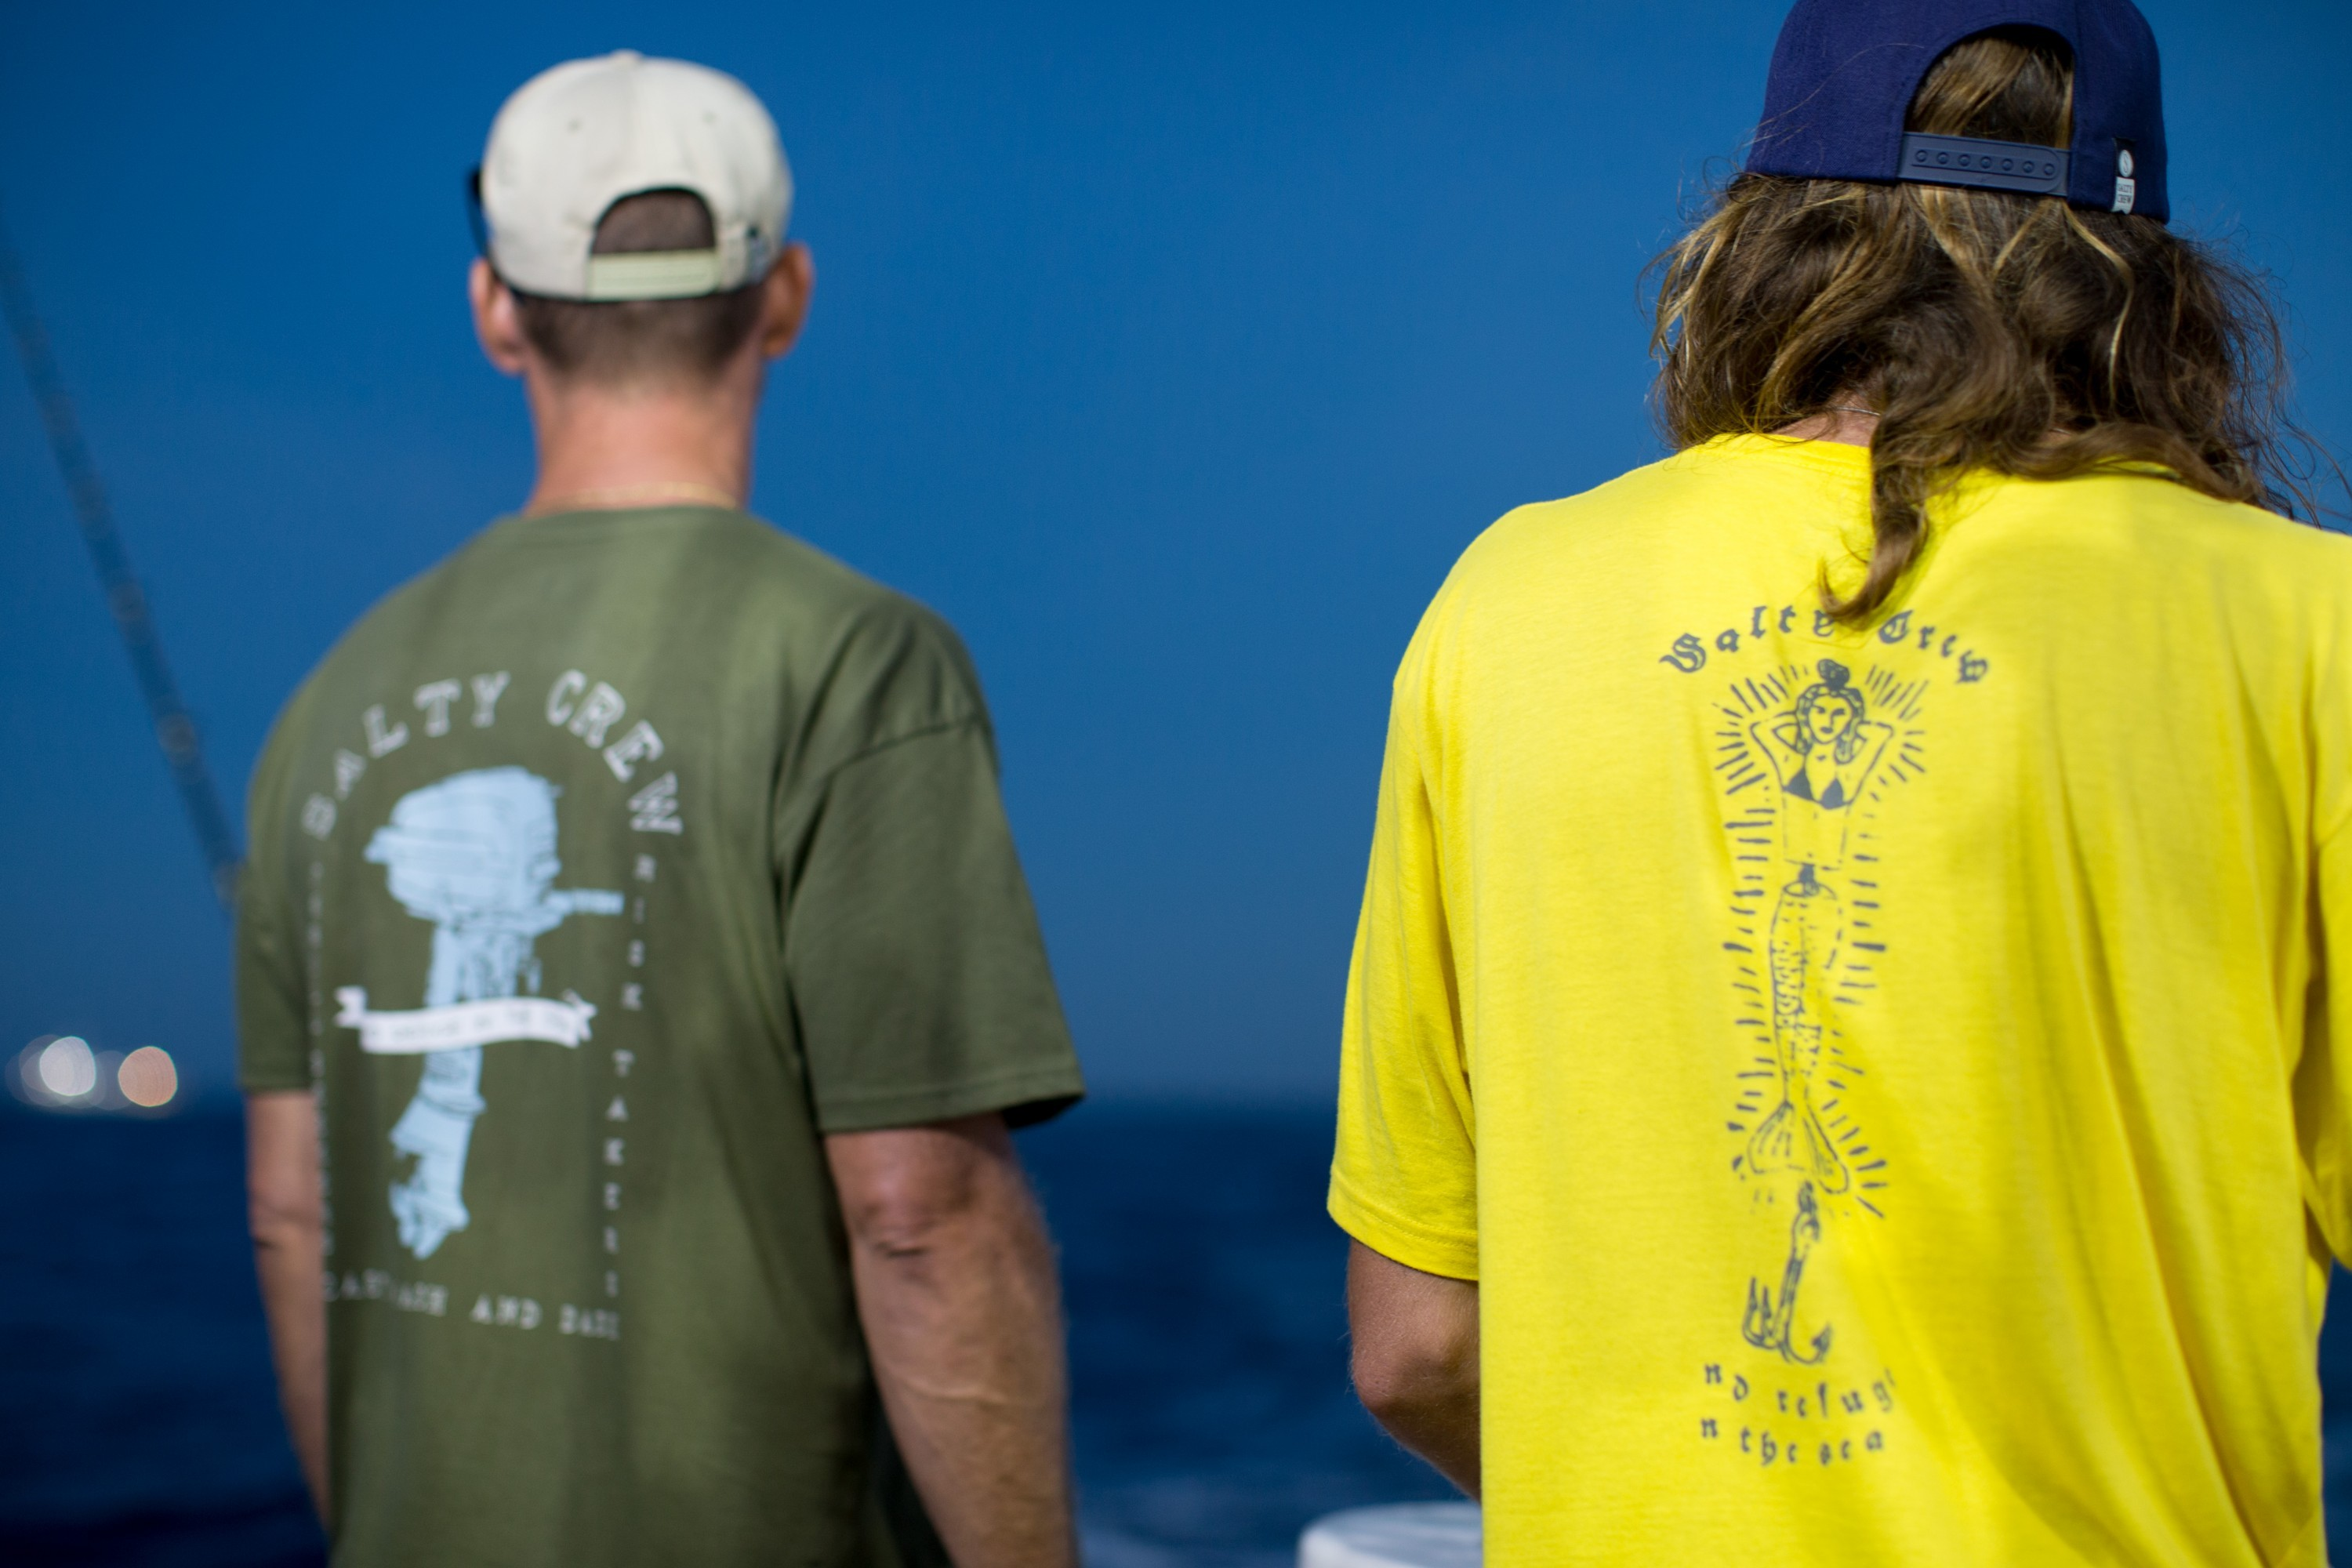 Salty_Crew_Find_Refuge_in_the_sea_movie_8